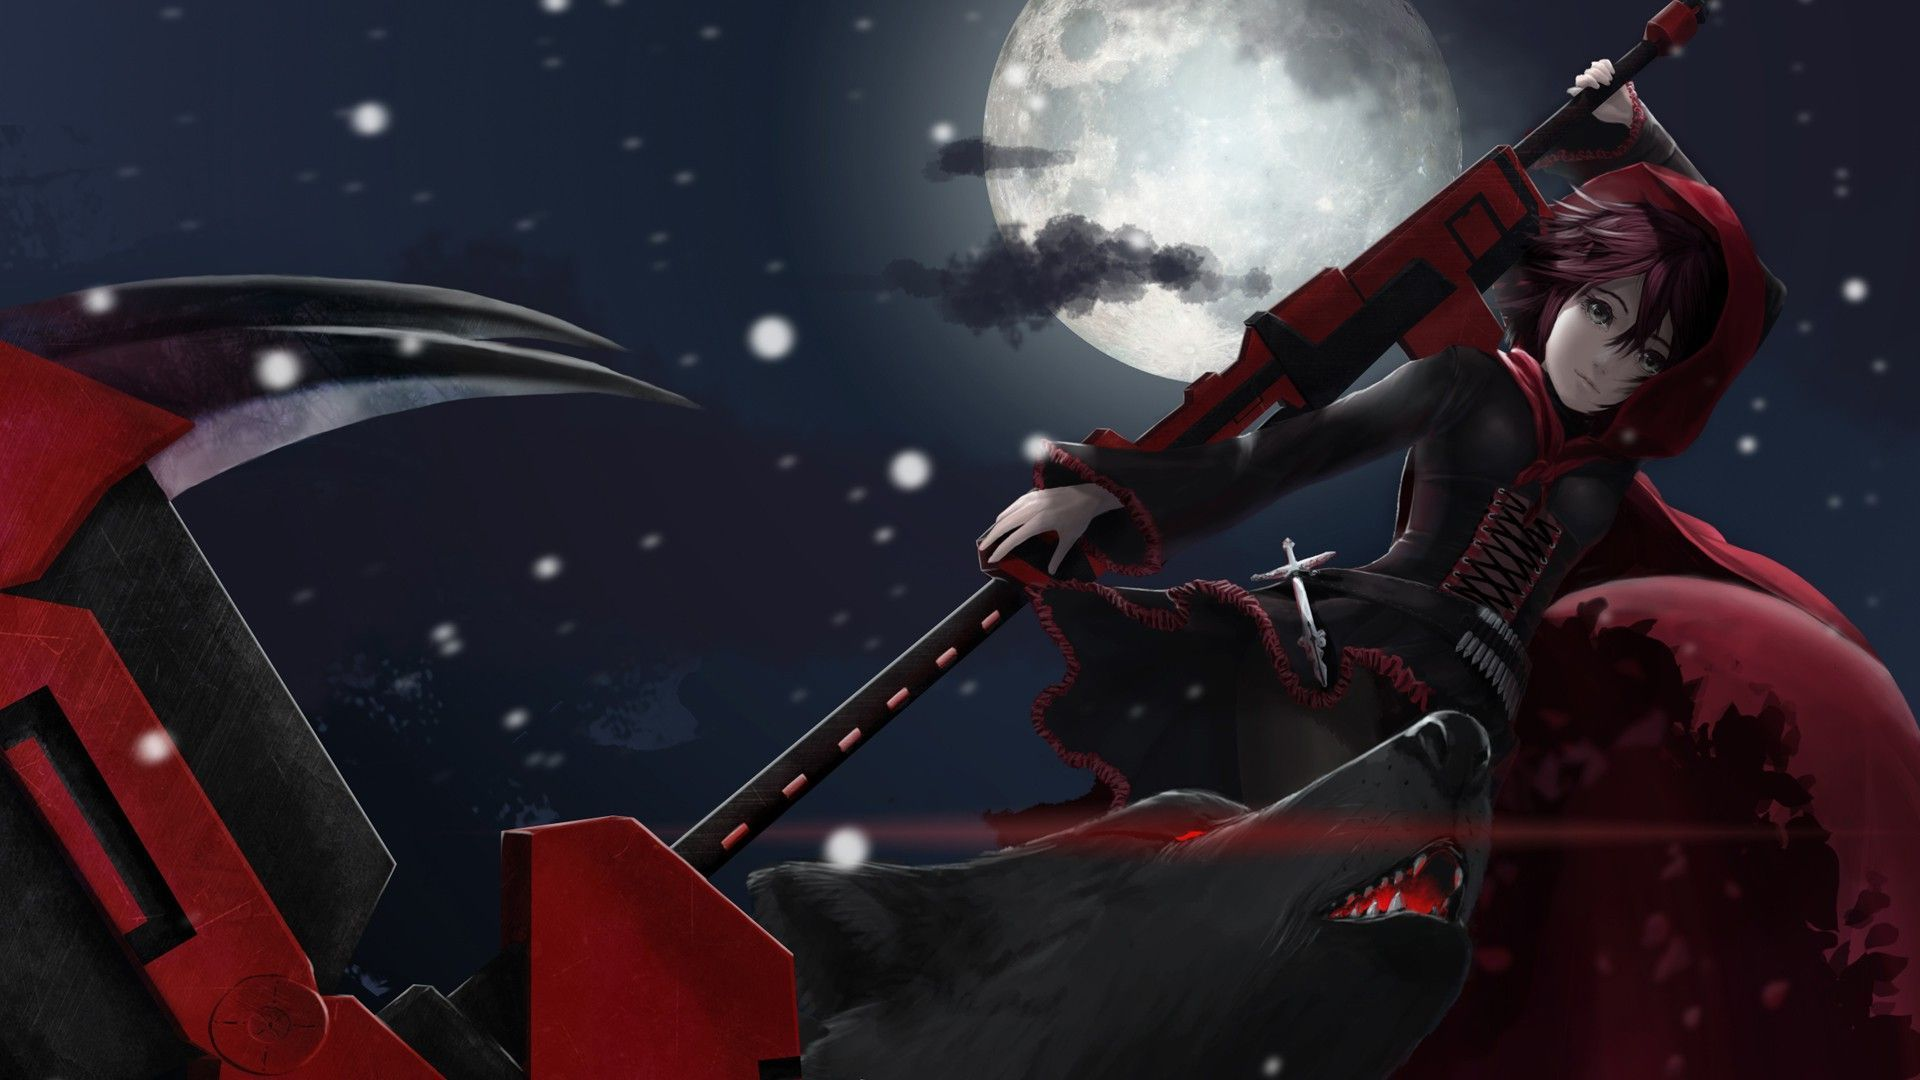 Anime RWBY Wallpapers Desktop Phone Tablet Awesome